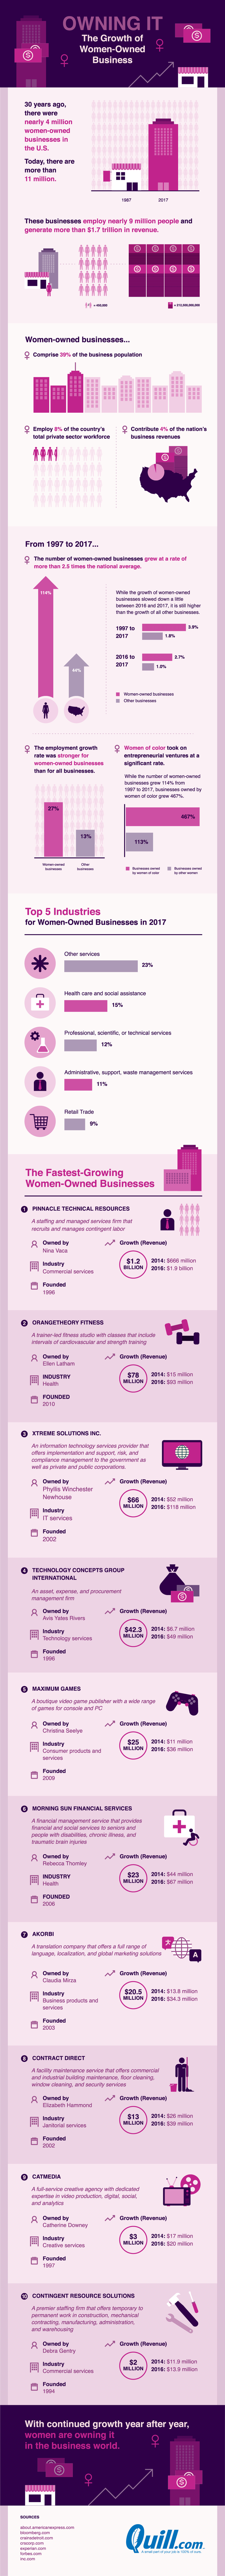 growth-women-owned-businesses1